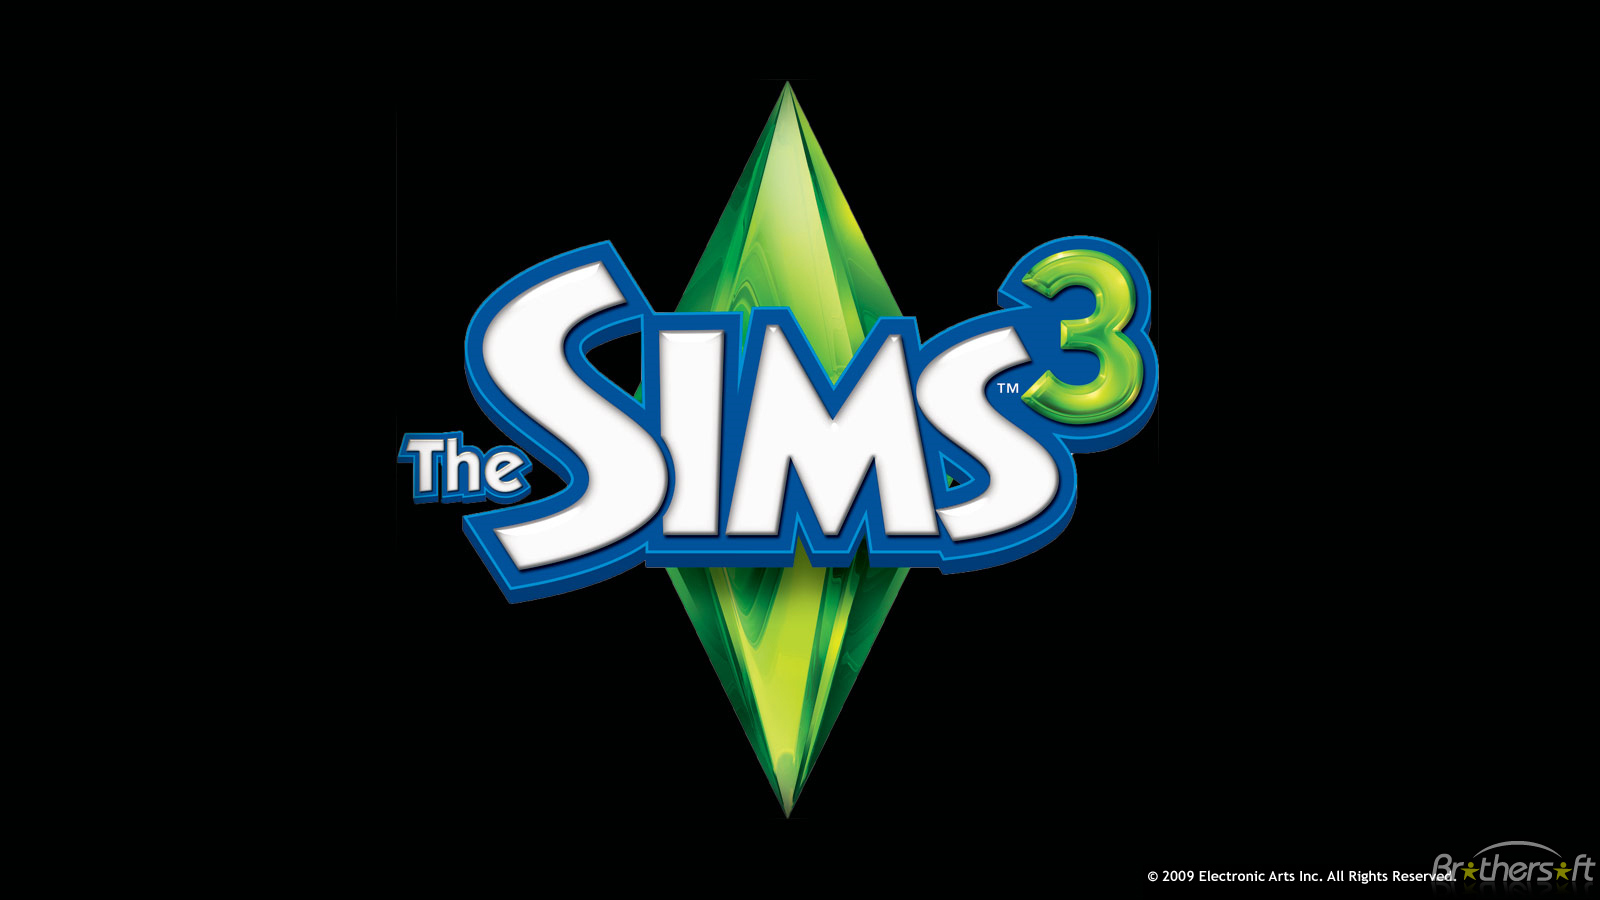 Download The Sims 3 wallpaper The Sims 3 wallpaper Download 1600x900